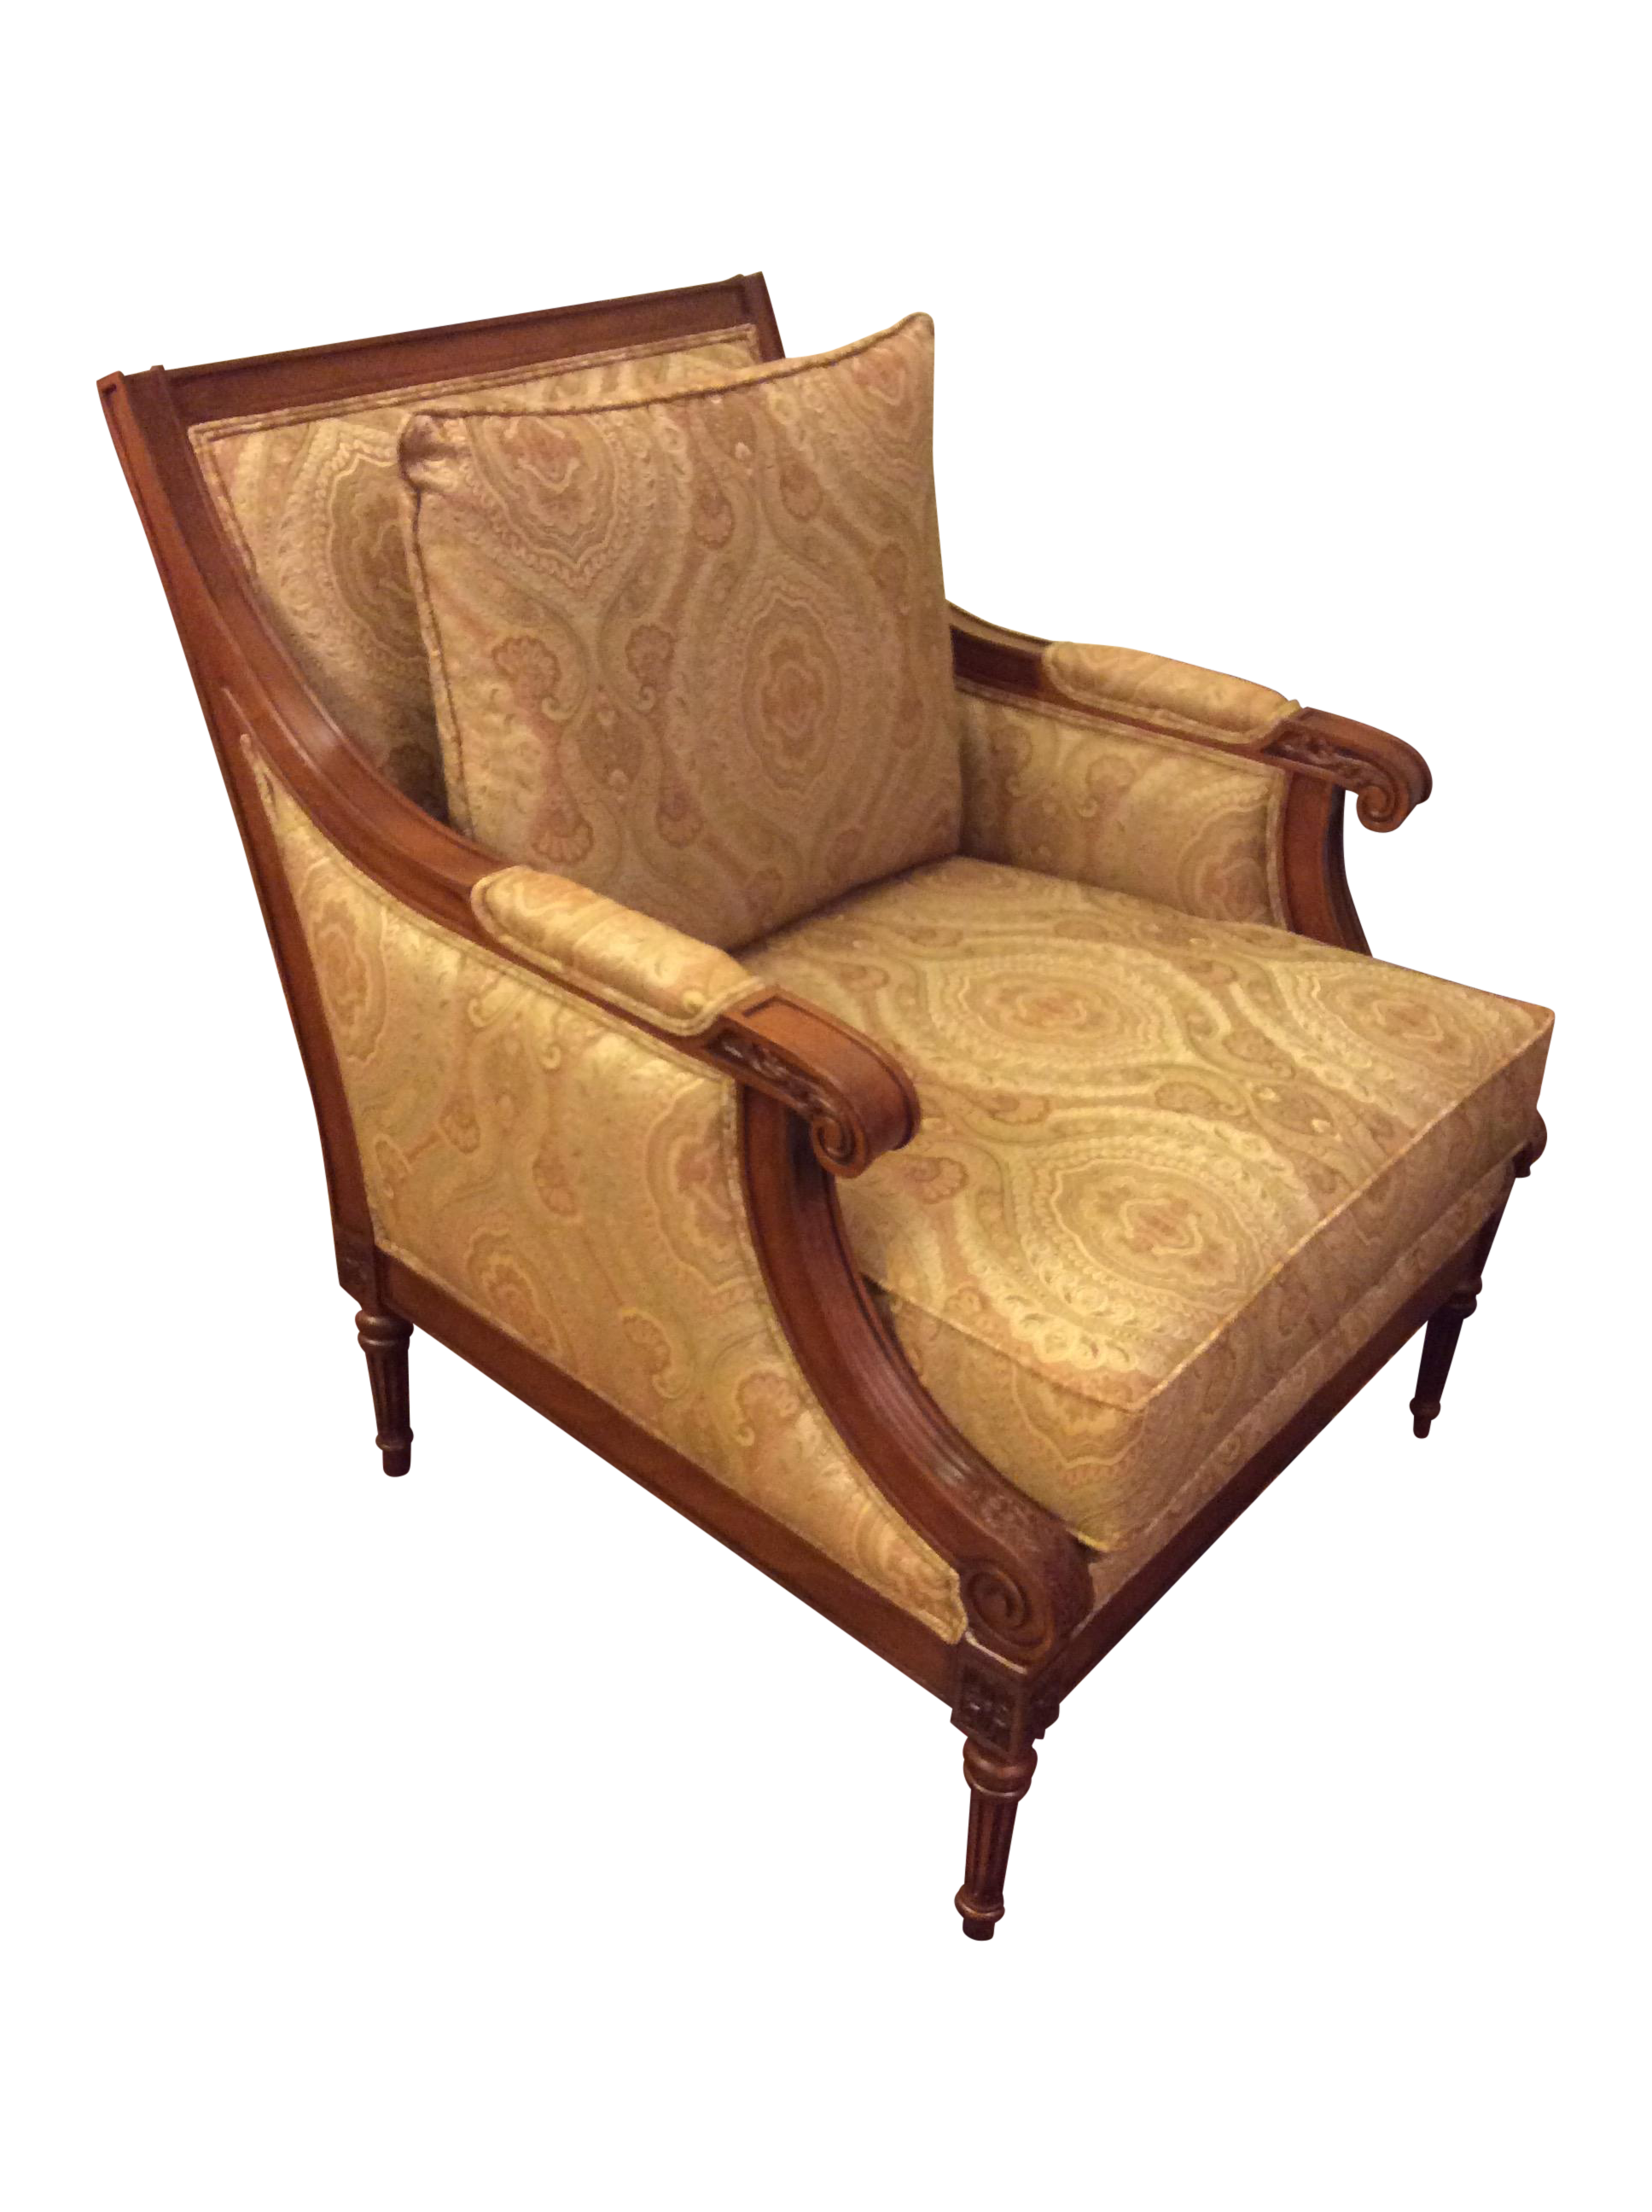 Ethan Allen Fairfax Chair On Chairish.com. $350 Ethan Allen, Club Chairs,